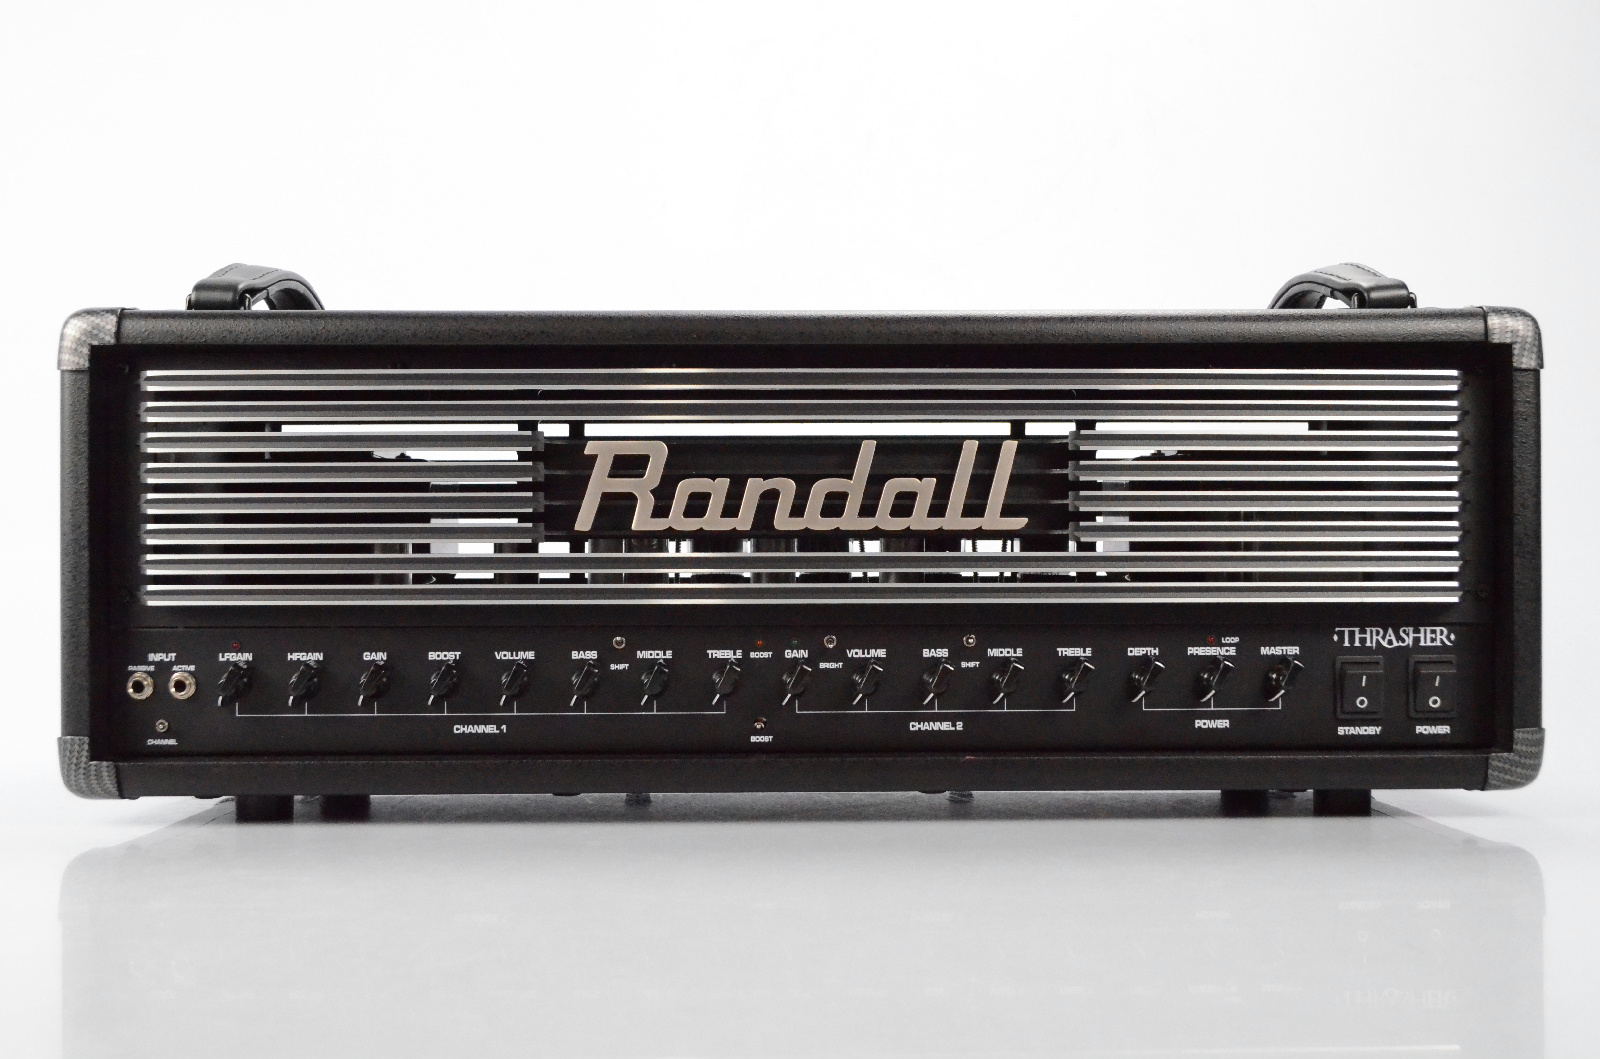 Randall Thrasher Guitar Tube Amplifier Amp Head Owned by George Lynch #32451